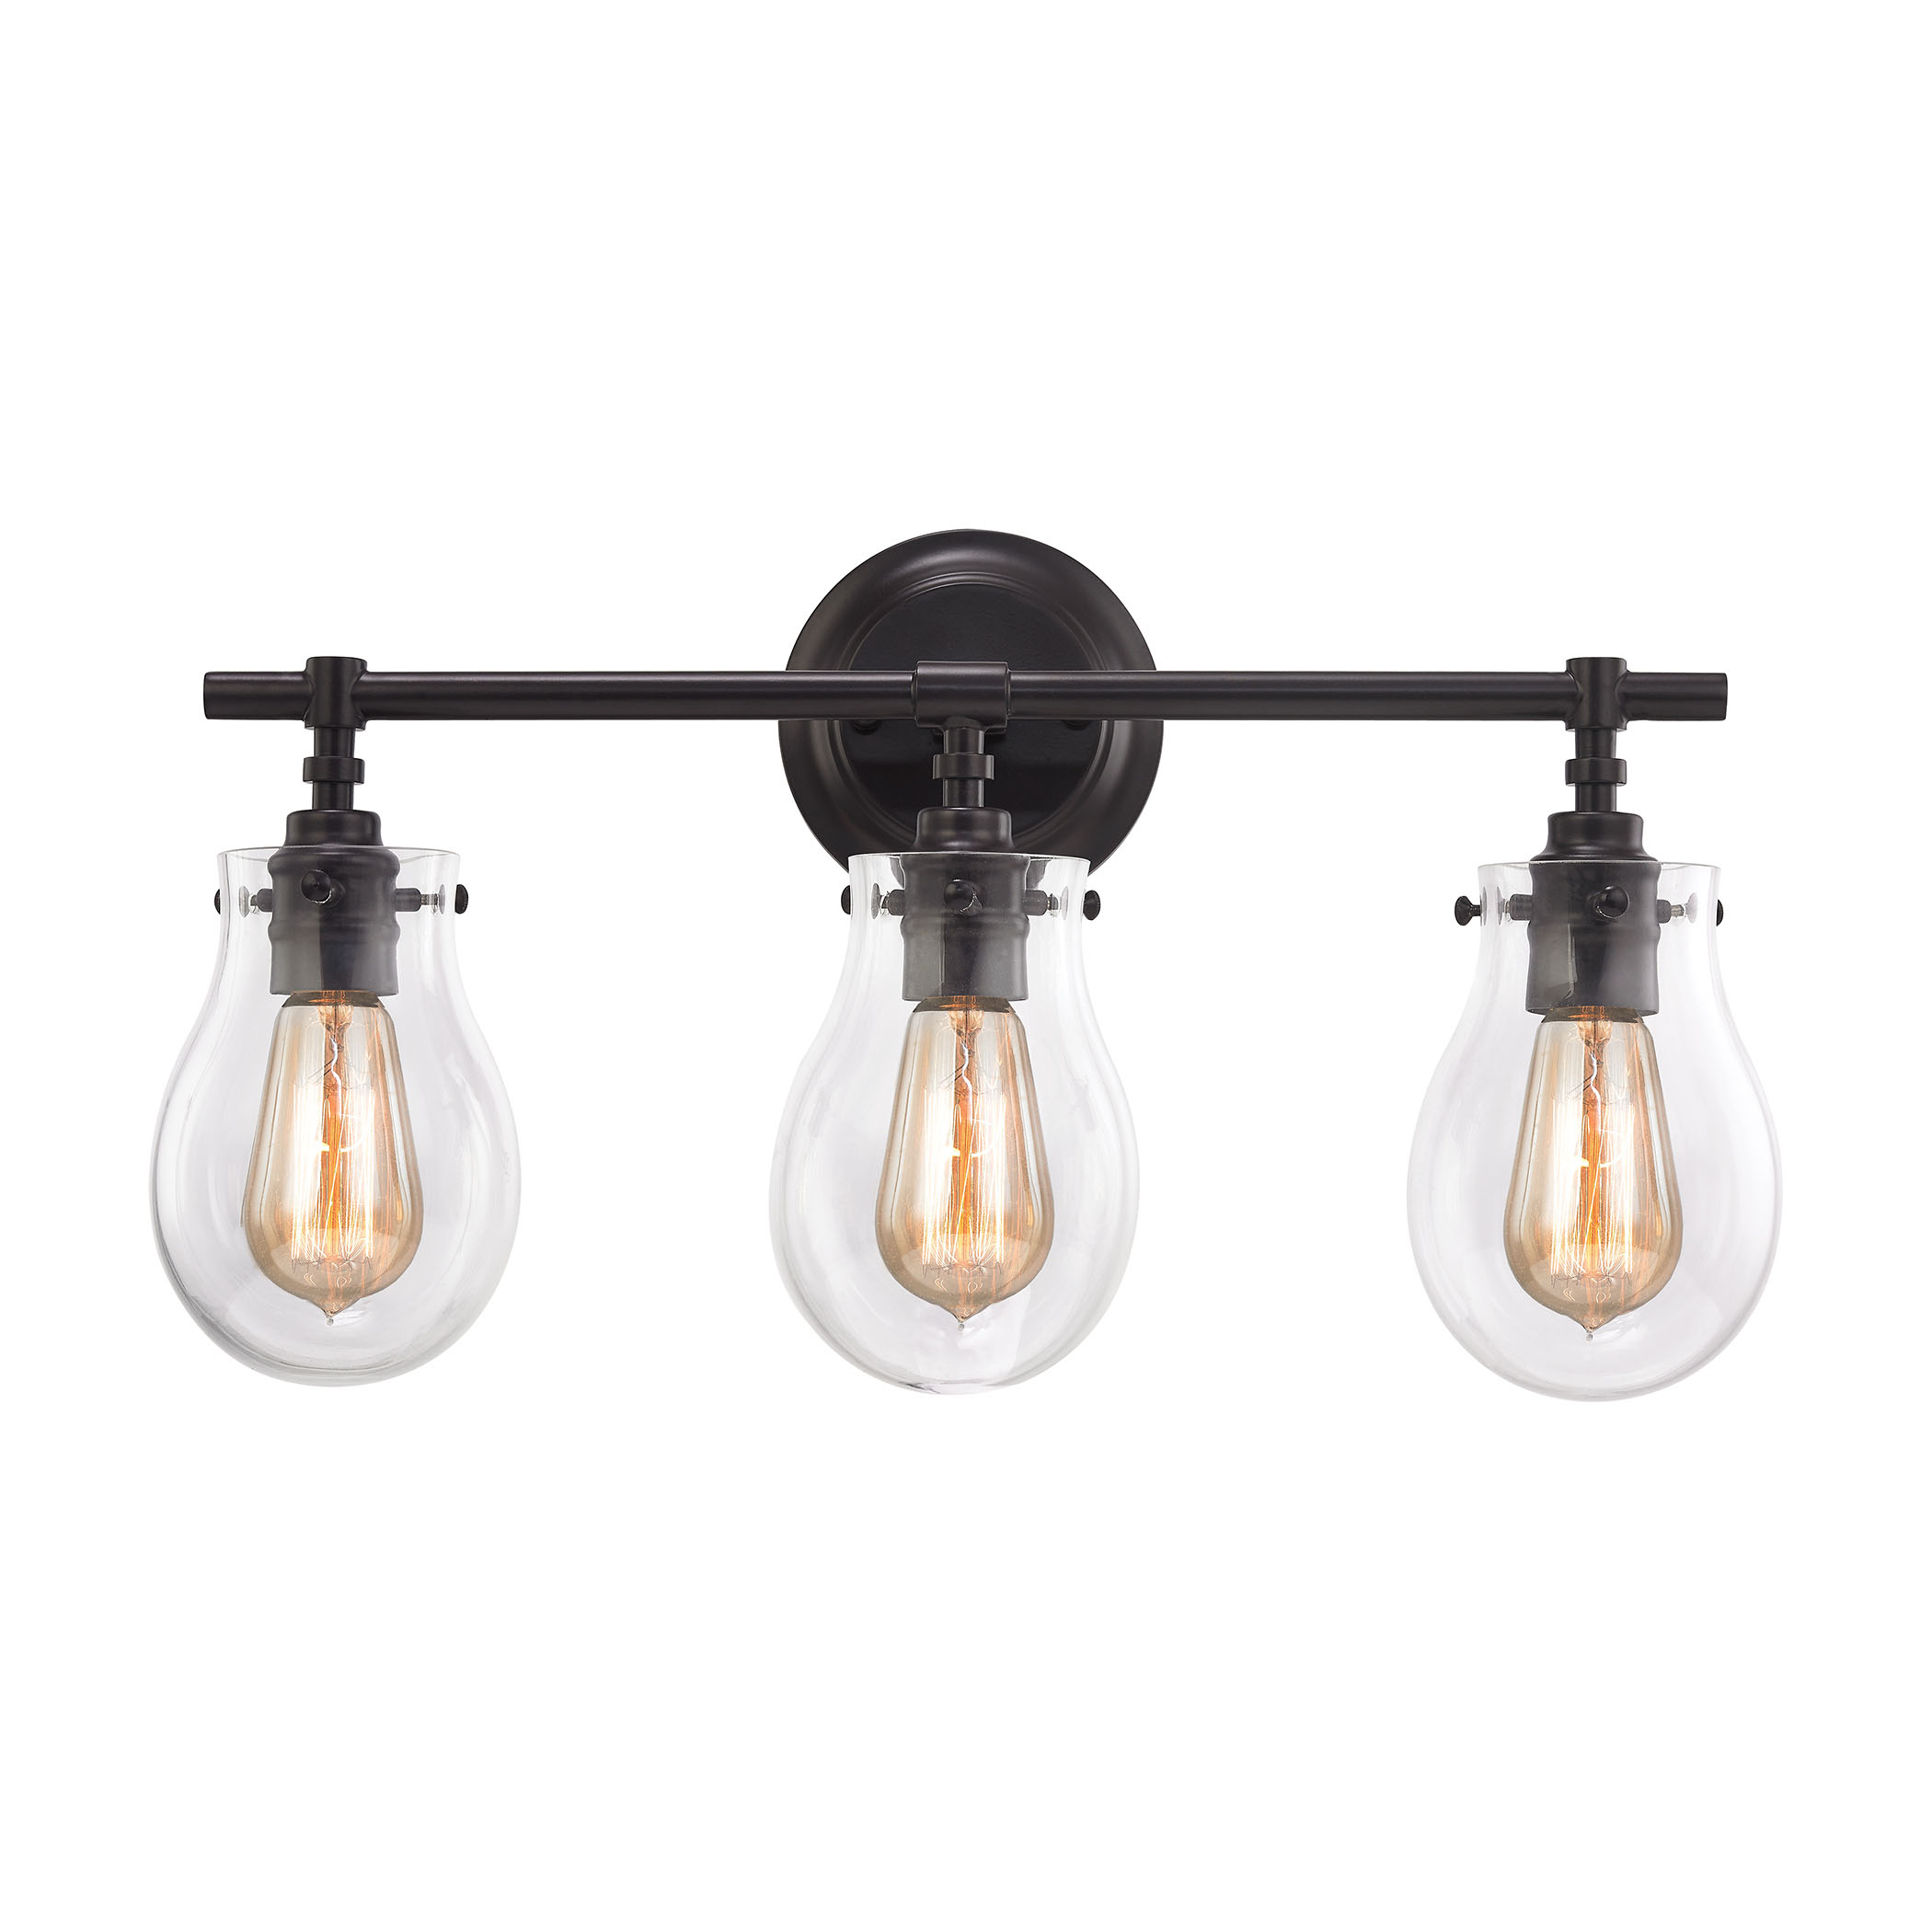 Jaelyn Bathroom Vanity Light Features Clear Or Opal Glass With